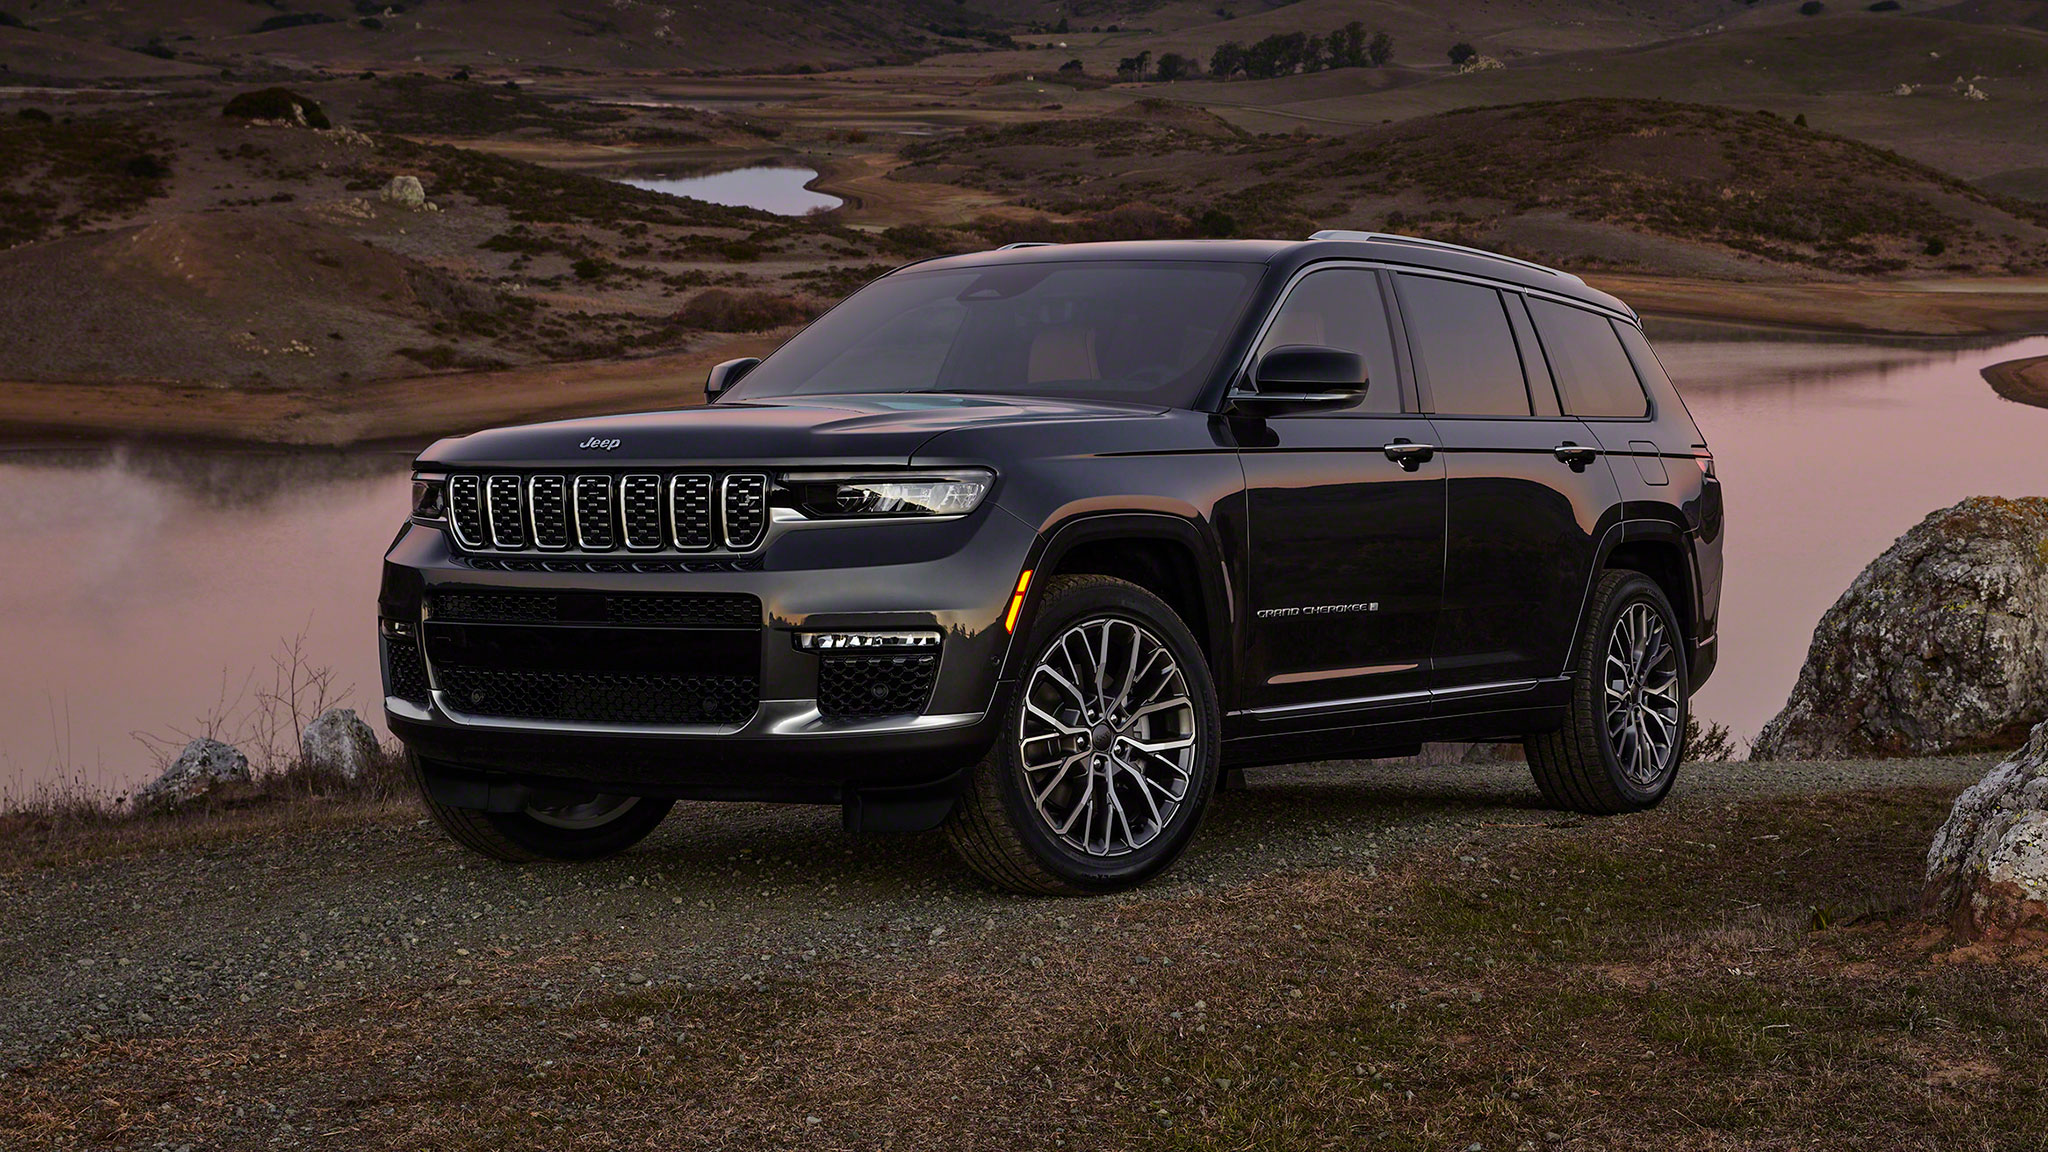 2021 jeep grand cherokee l first look: new architecture